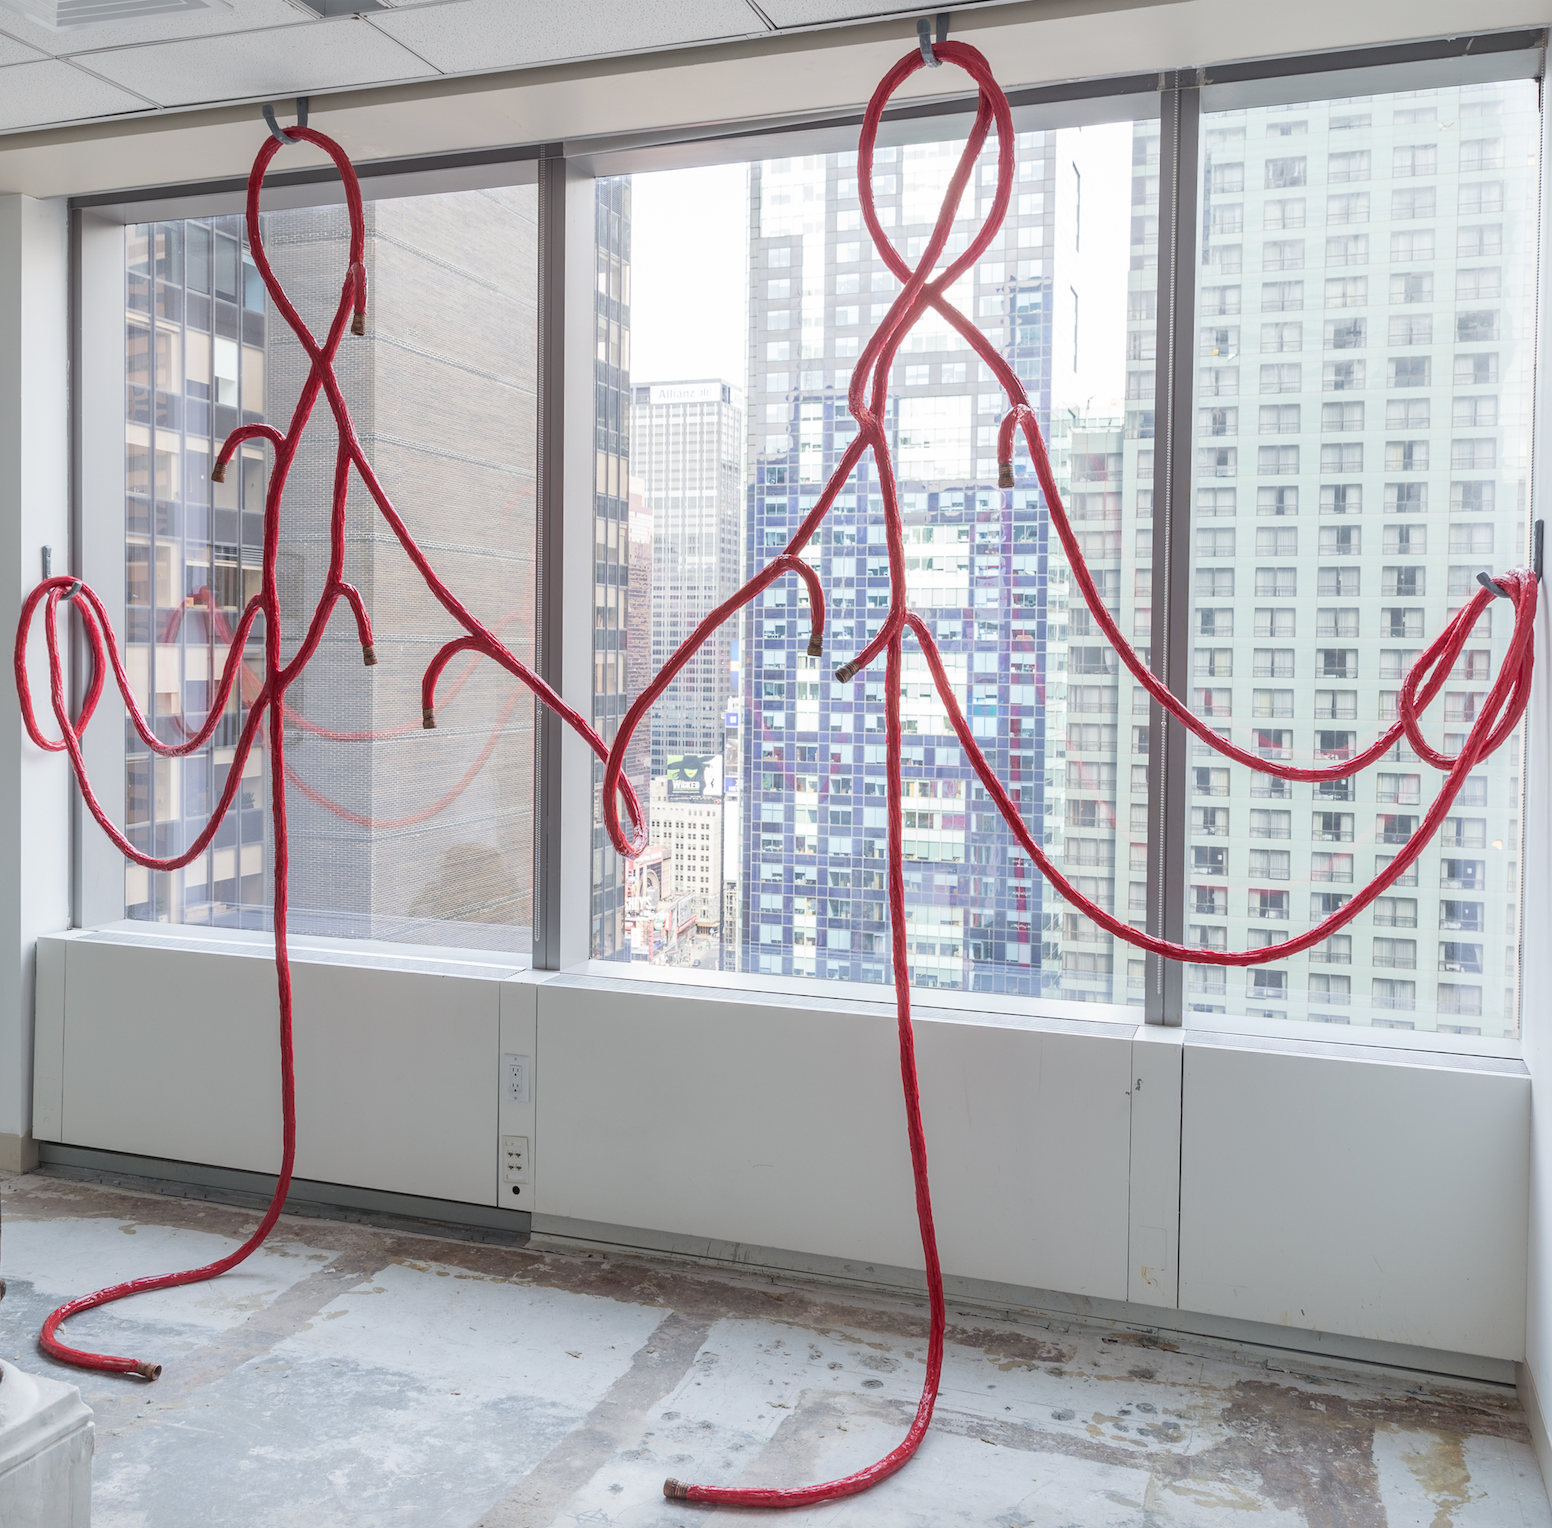 water hose, time traveler, 2017   rope, silicone rubber, plastic, pigment, aluminum & epoxy putty  12 x 7 in x 3 ft